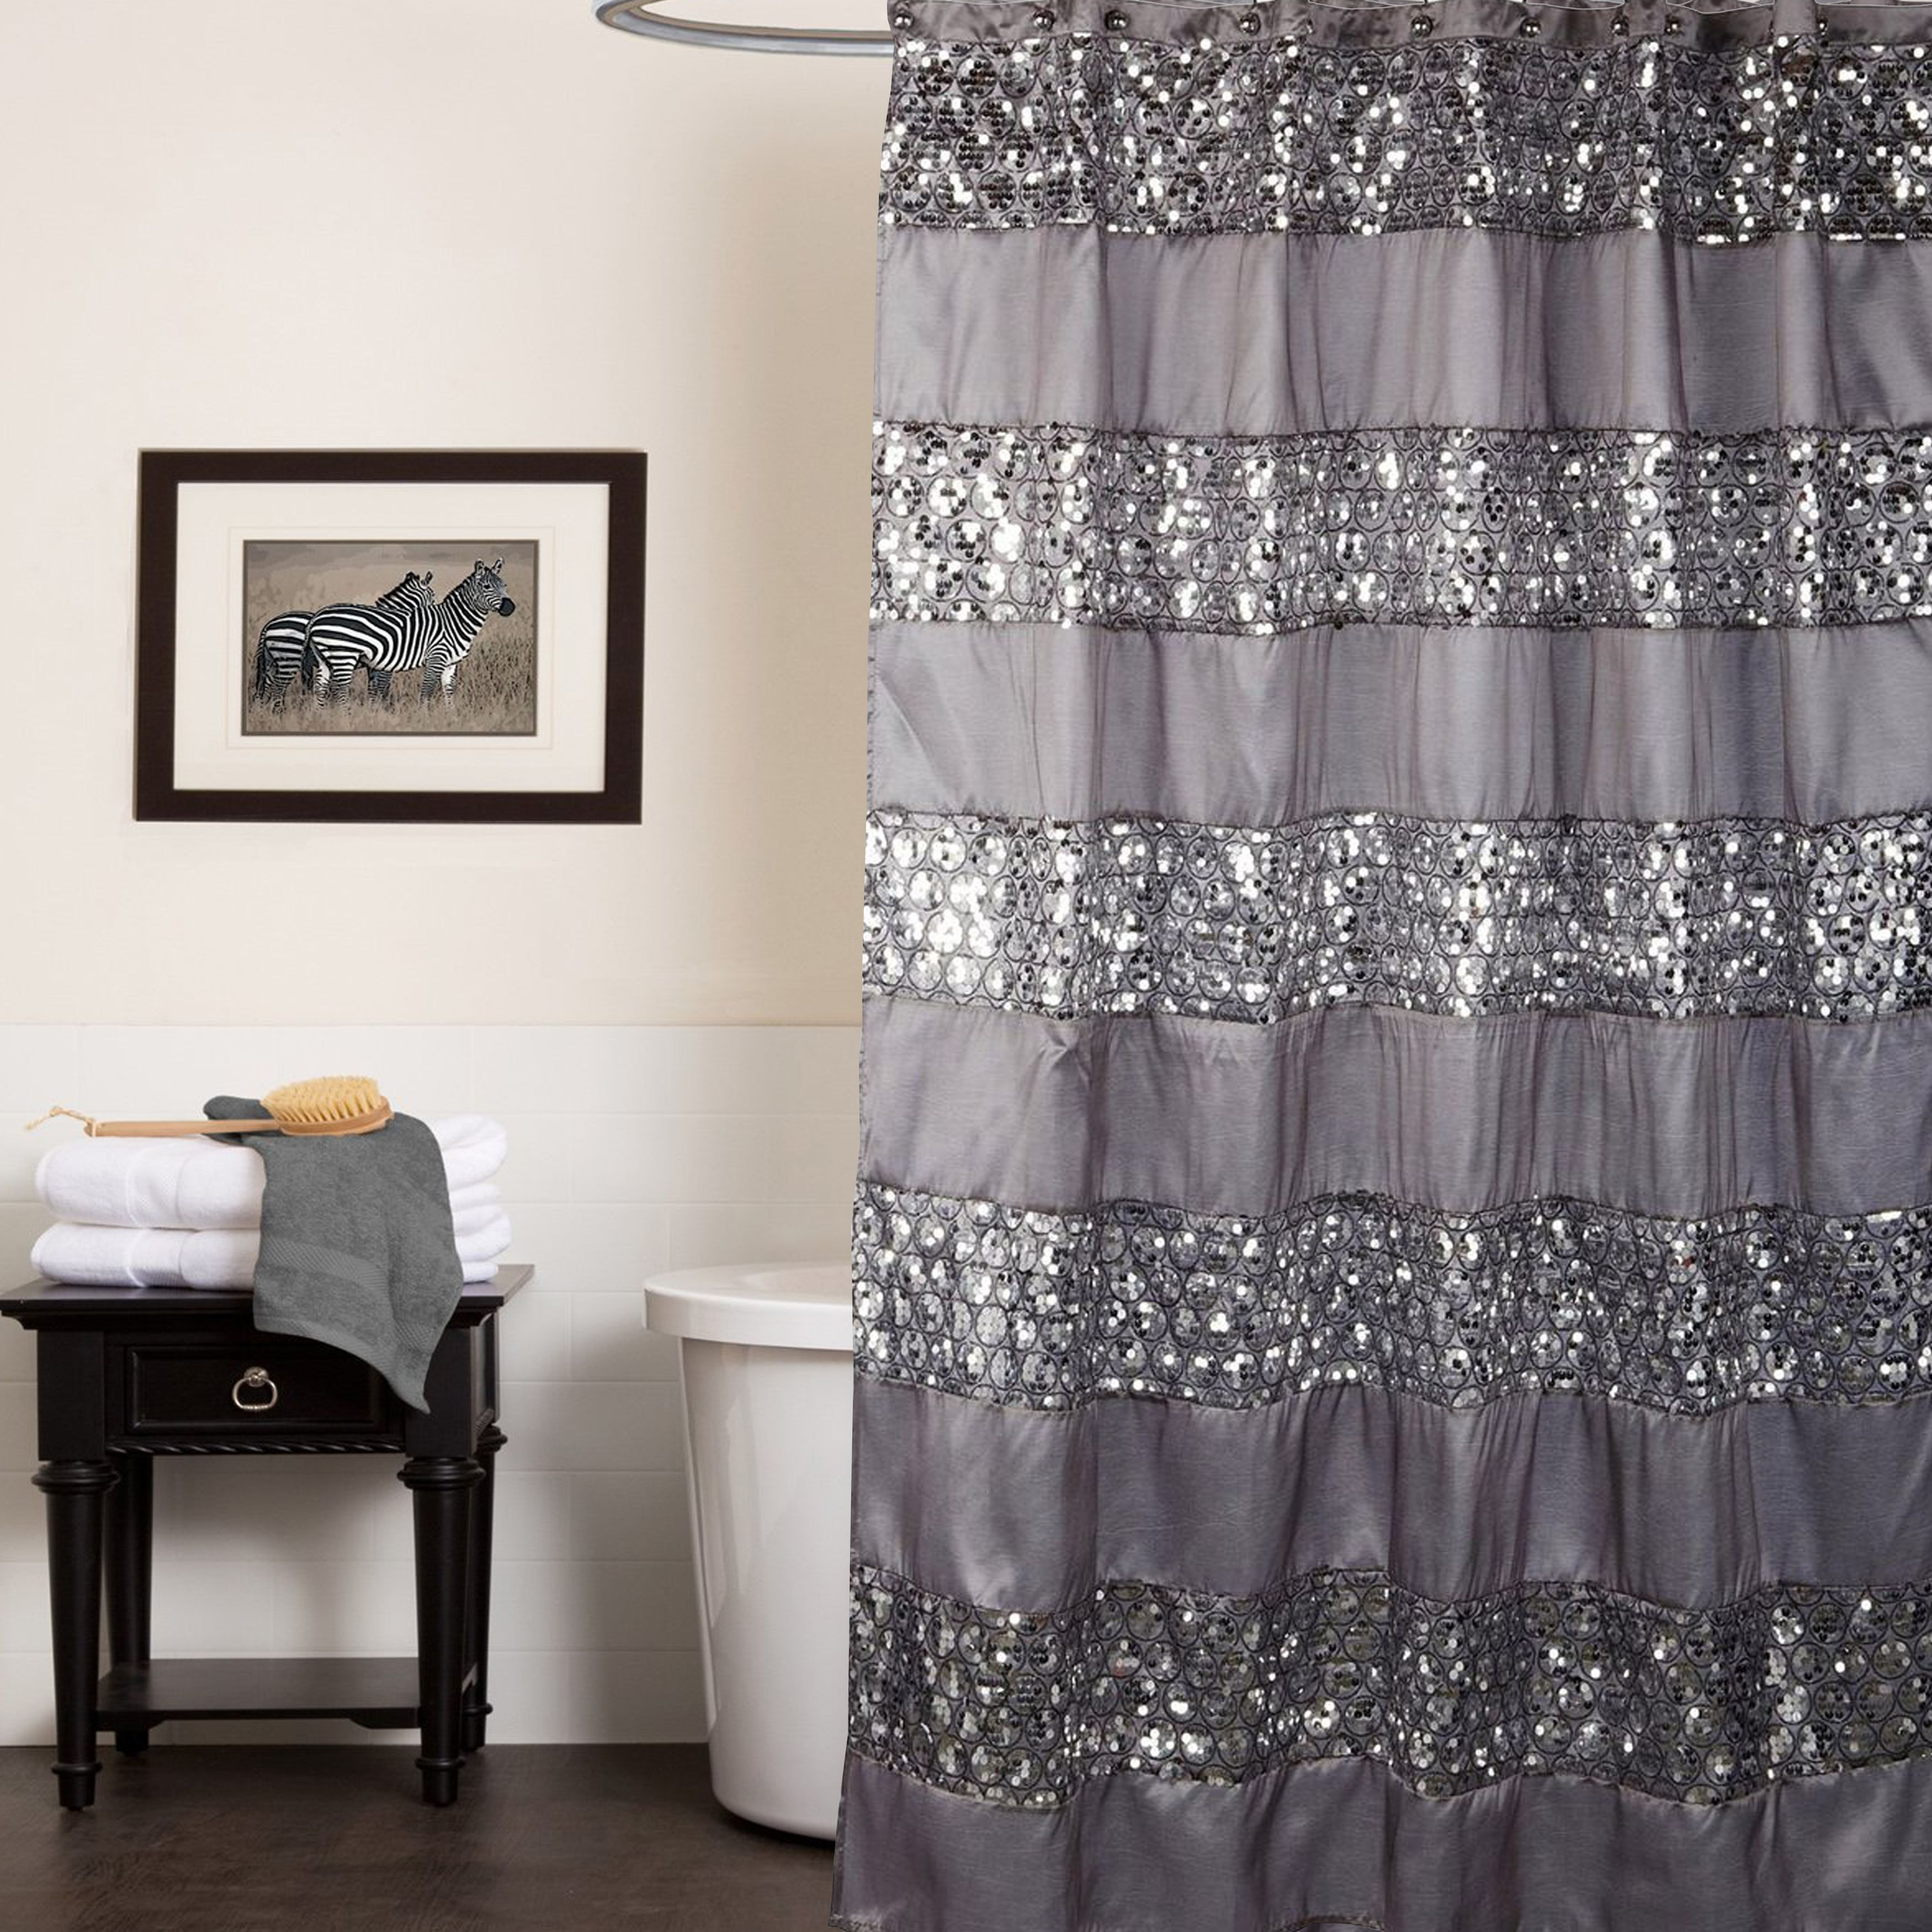 Home In 2020 Silver Shower Curtain Sequin Shower Curtain Bathroom Shower Curtains